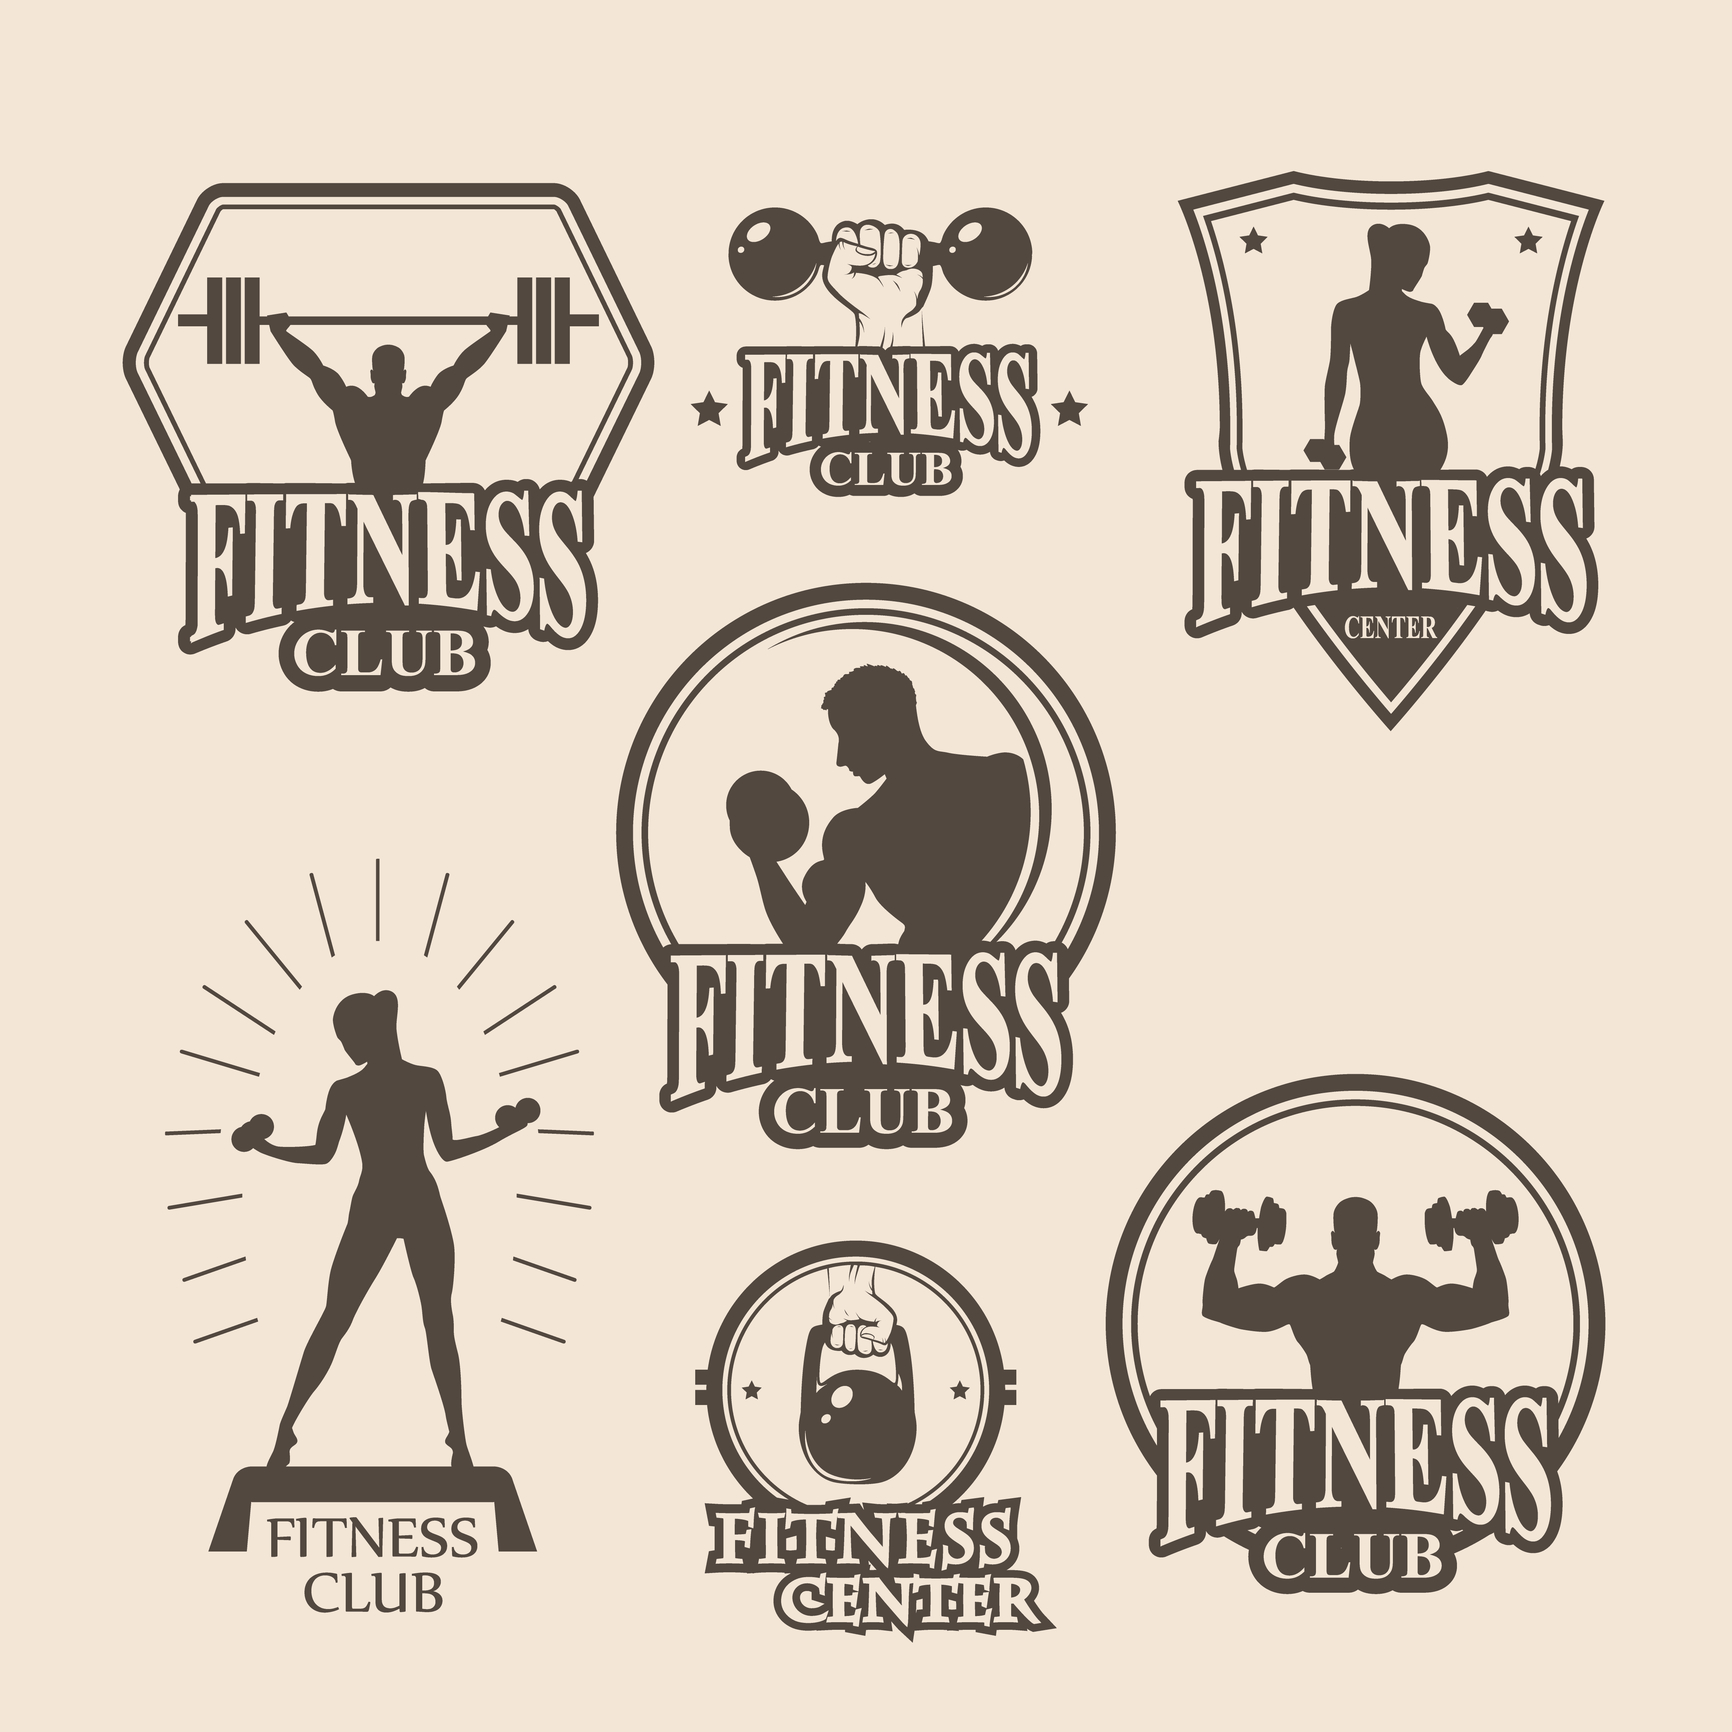 Design Elements Of A Fitness Logo That Motivates O Online